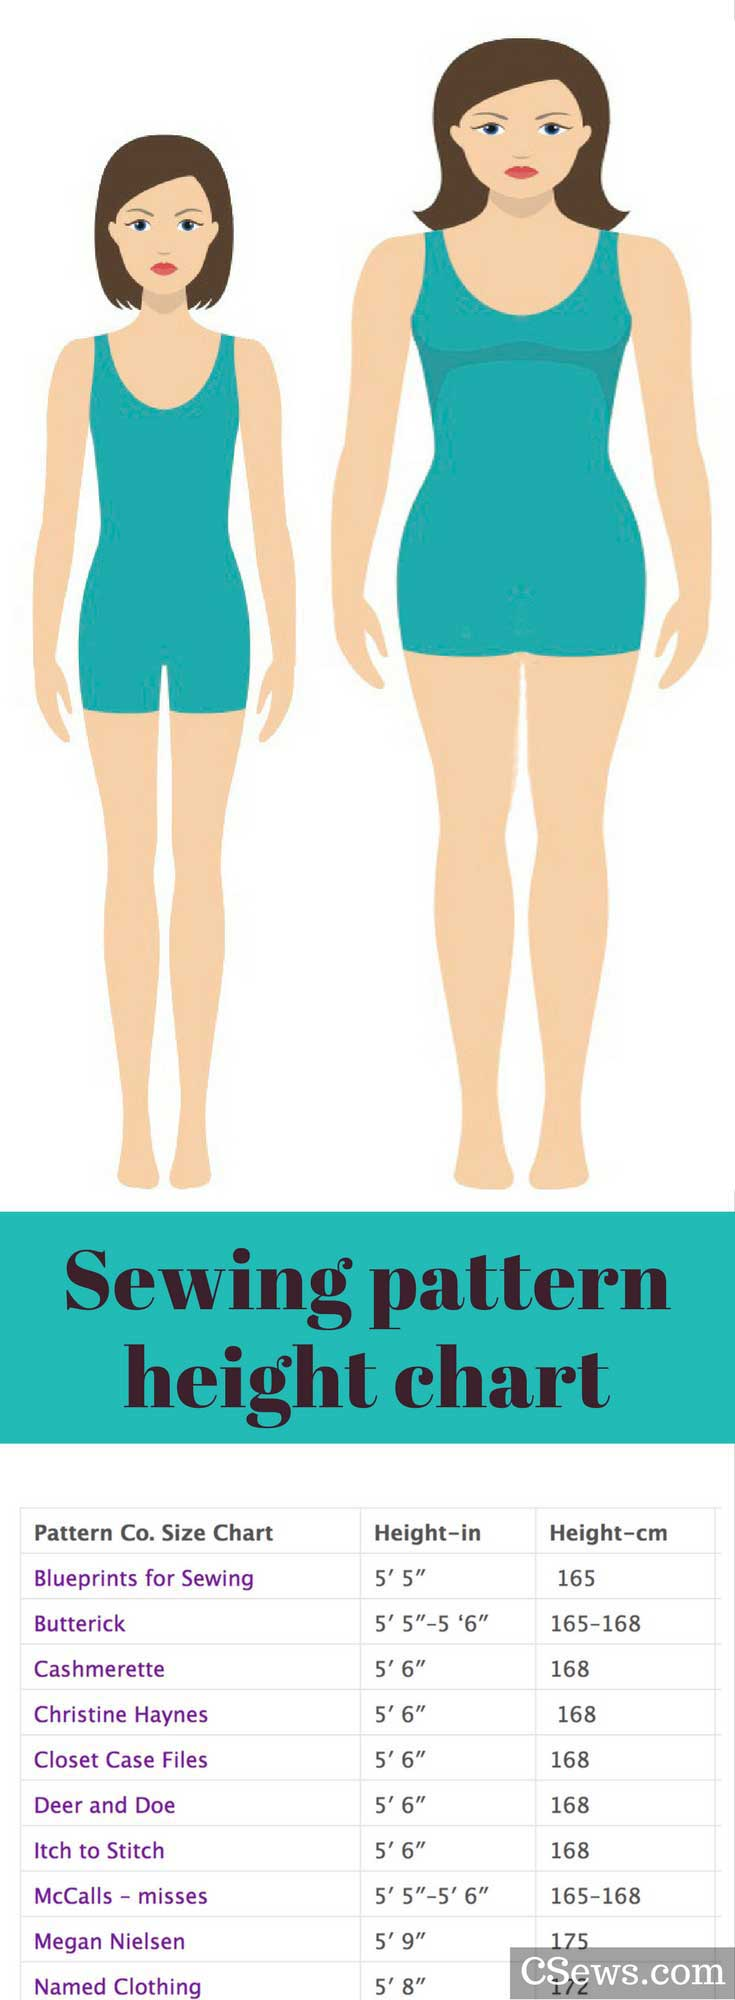 Sewing pattern height - chart listing Big Four and indie pattern heights that they are designed for (Christine Haynes, Closet Case Files, Deer and Doe, In the Folds, Named, Megan Nielsen, Papercut, Paprika, Style Arc, and more)